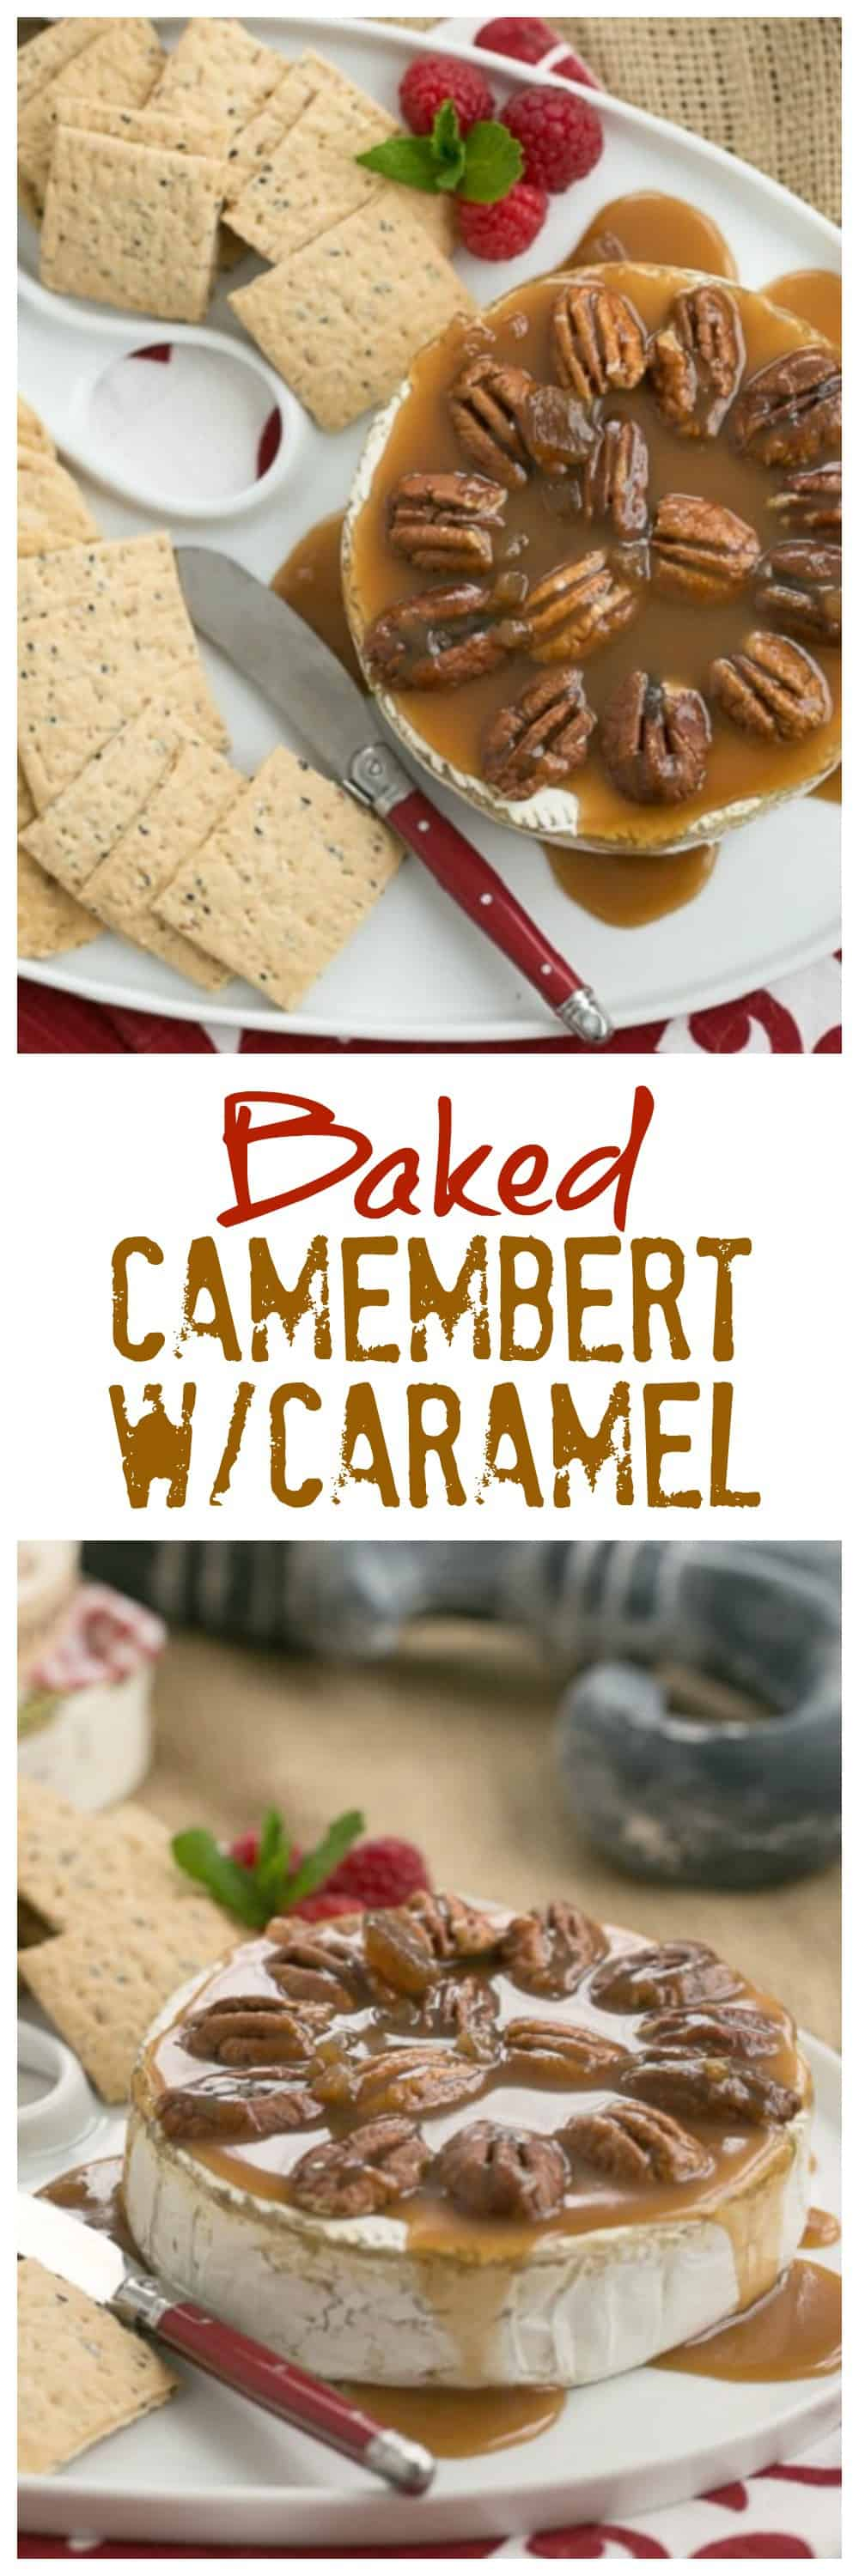 Baked Camembert with Caramel and Pecans is the perfect weapon in your arsenal of easy appetizer recipes since it's only 3 ingredients and definitely a showstopper! #appetizer #cheese #bakedcheese